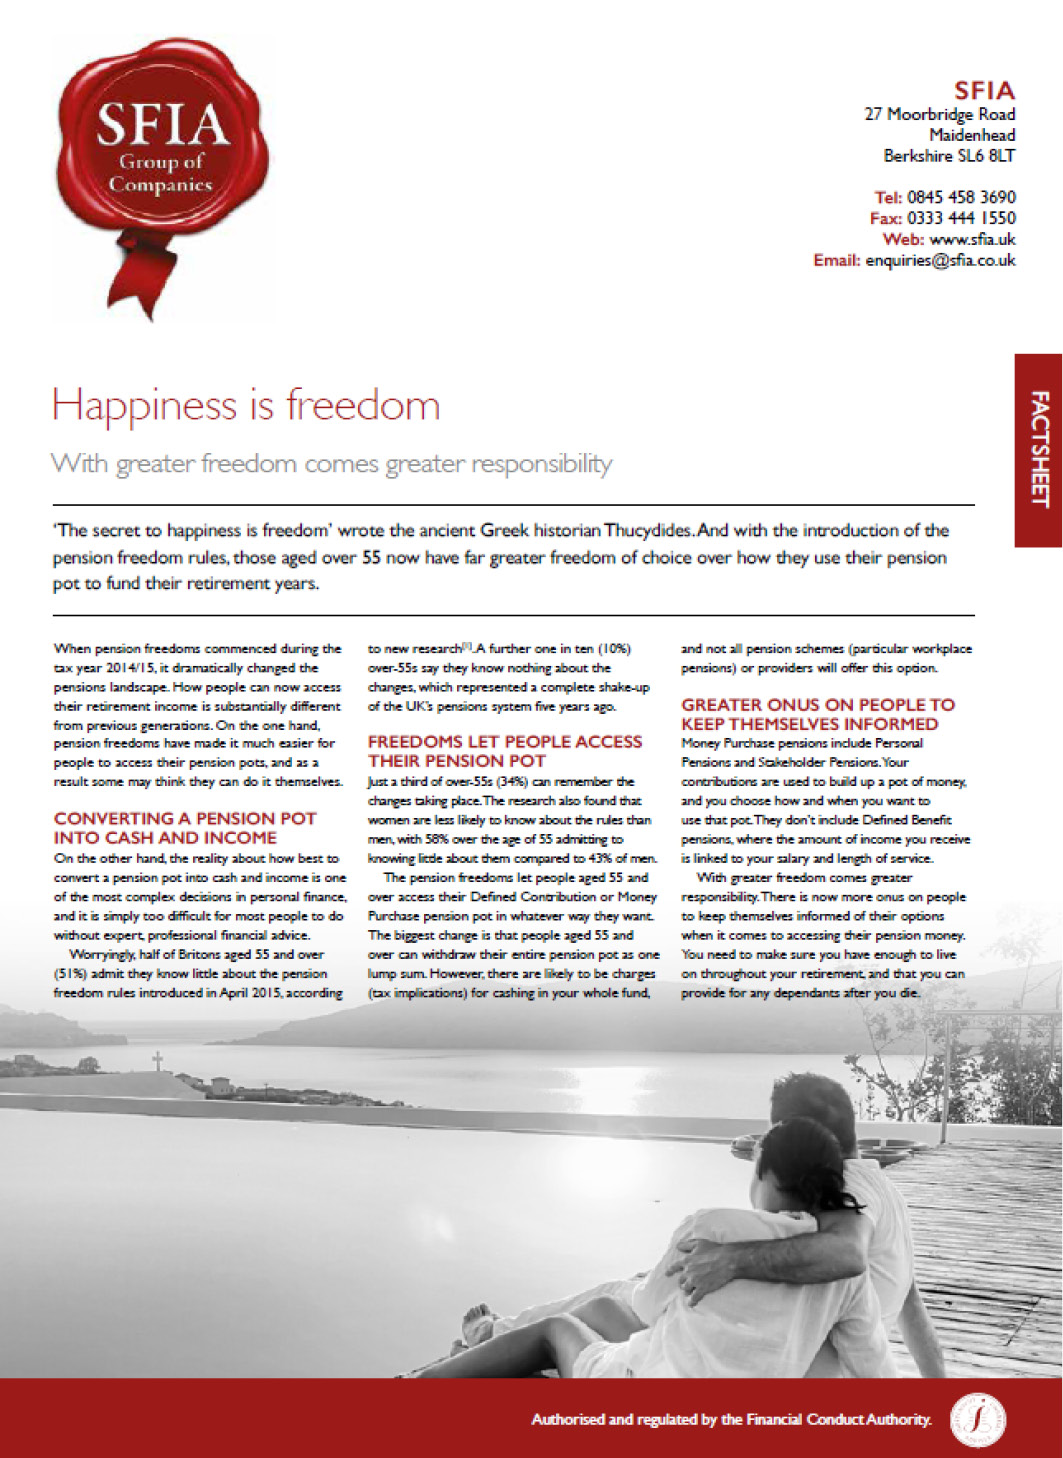 happiness is freedom image